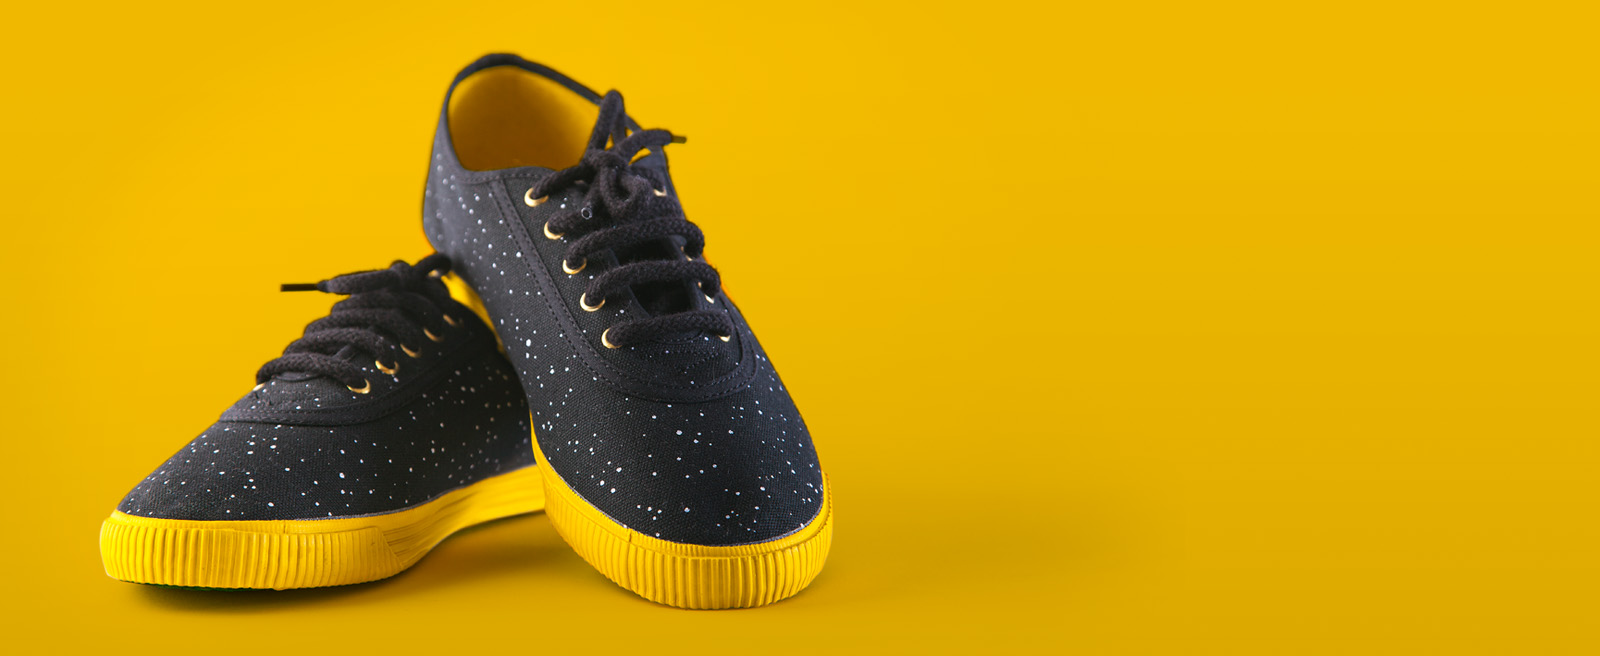 Startas sneakers with the Identity of PFF